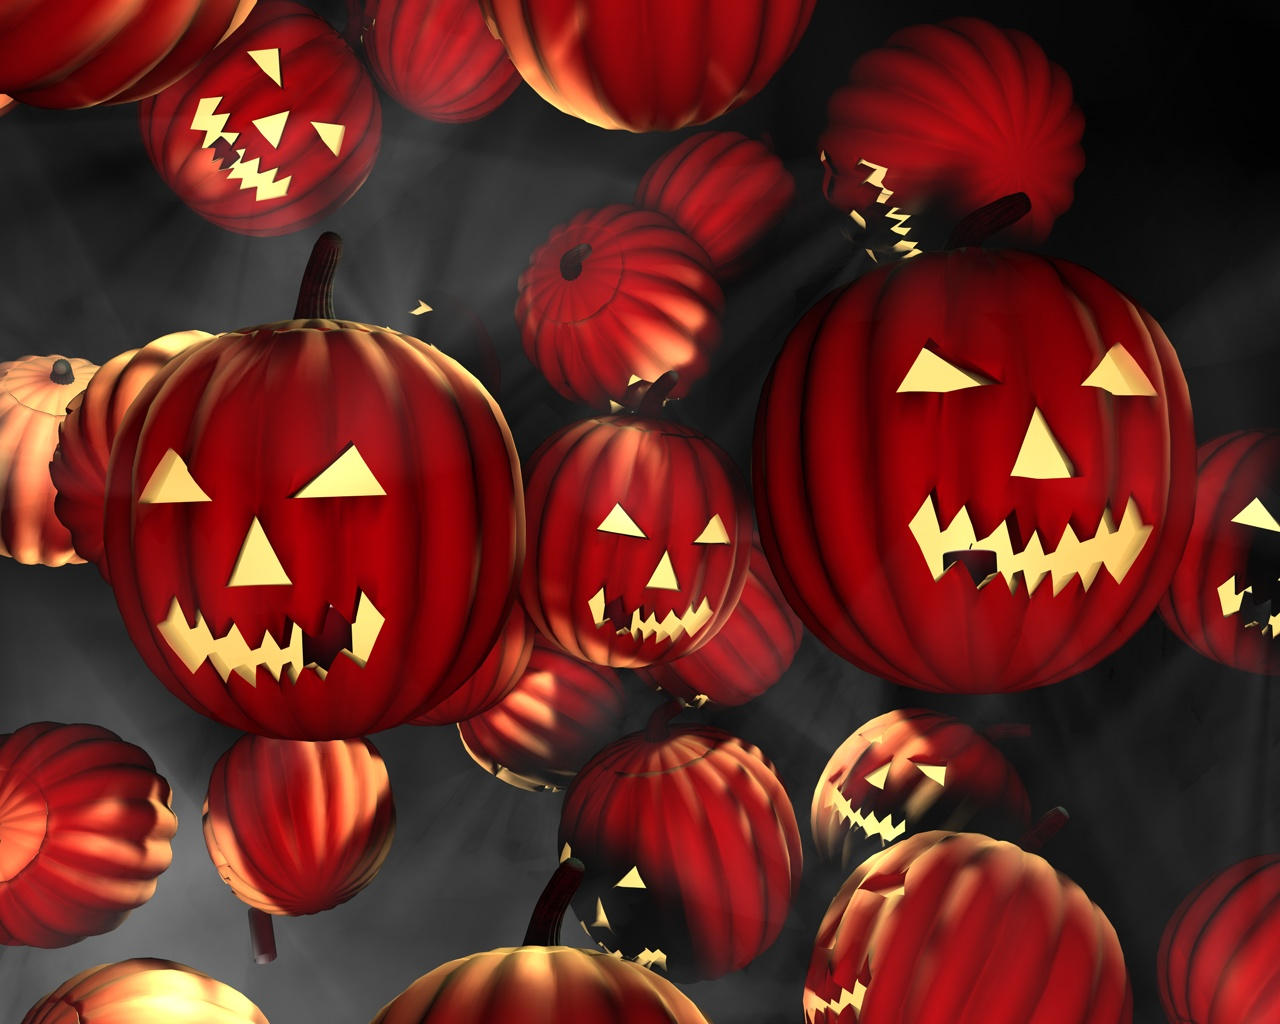 Cool Wallpaper Halloween Red - Pumpkins_2_by_Trablex  Best Photo Reference_754815.jpg